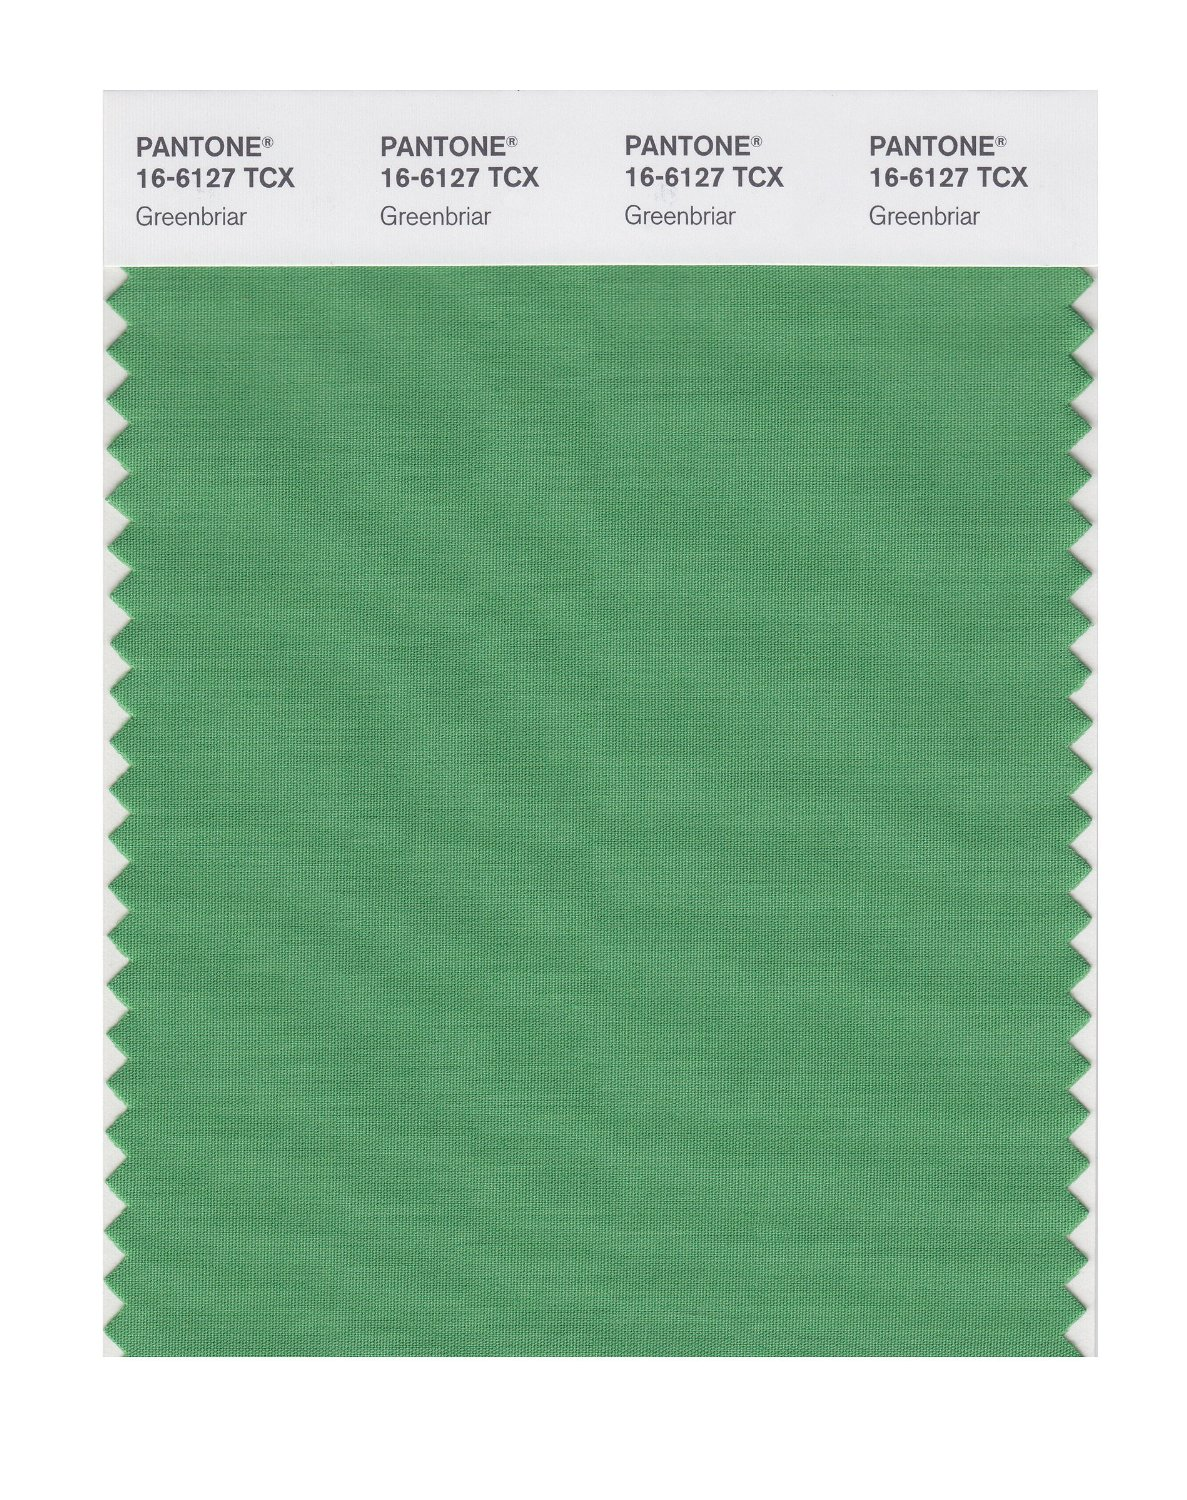 Pantone Smart Swatch 16-6127 Greenbriar